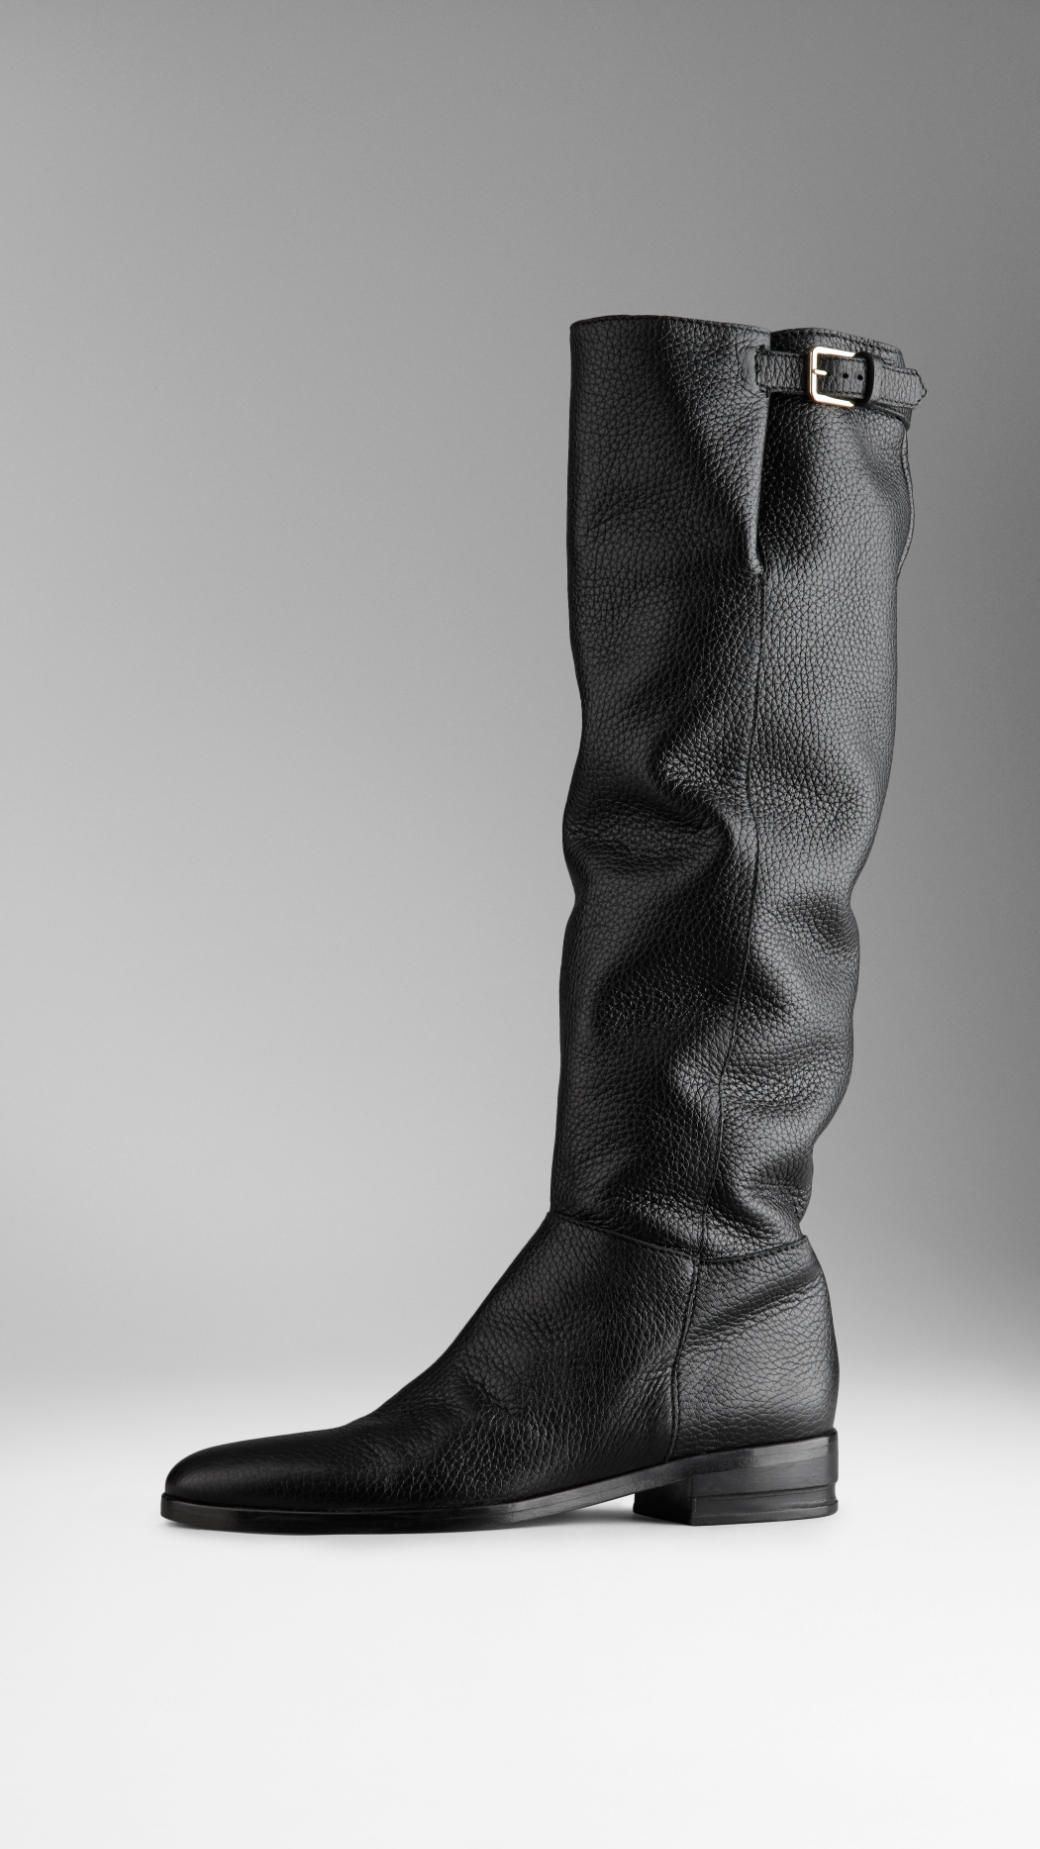 burberry body boots